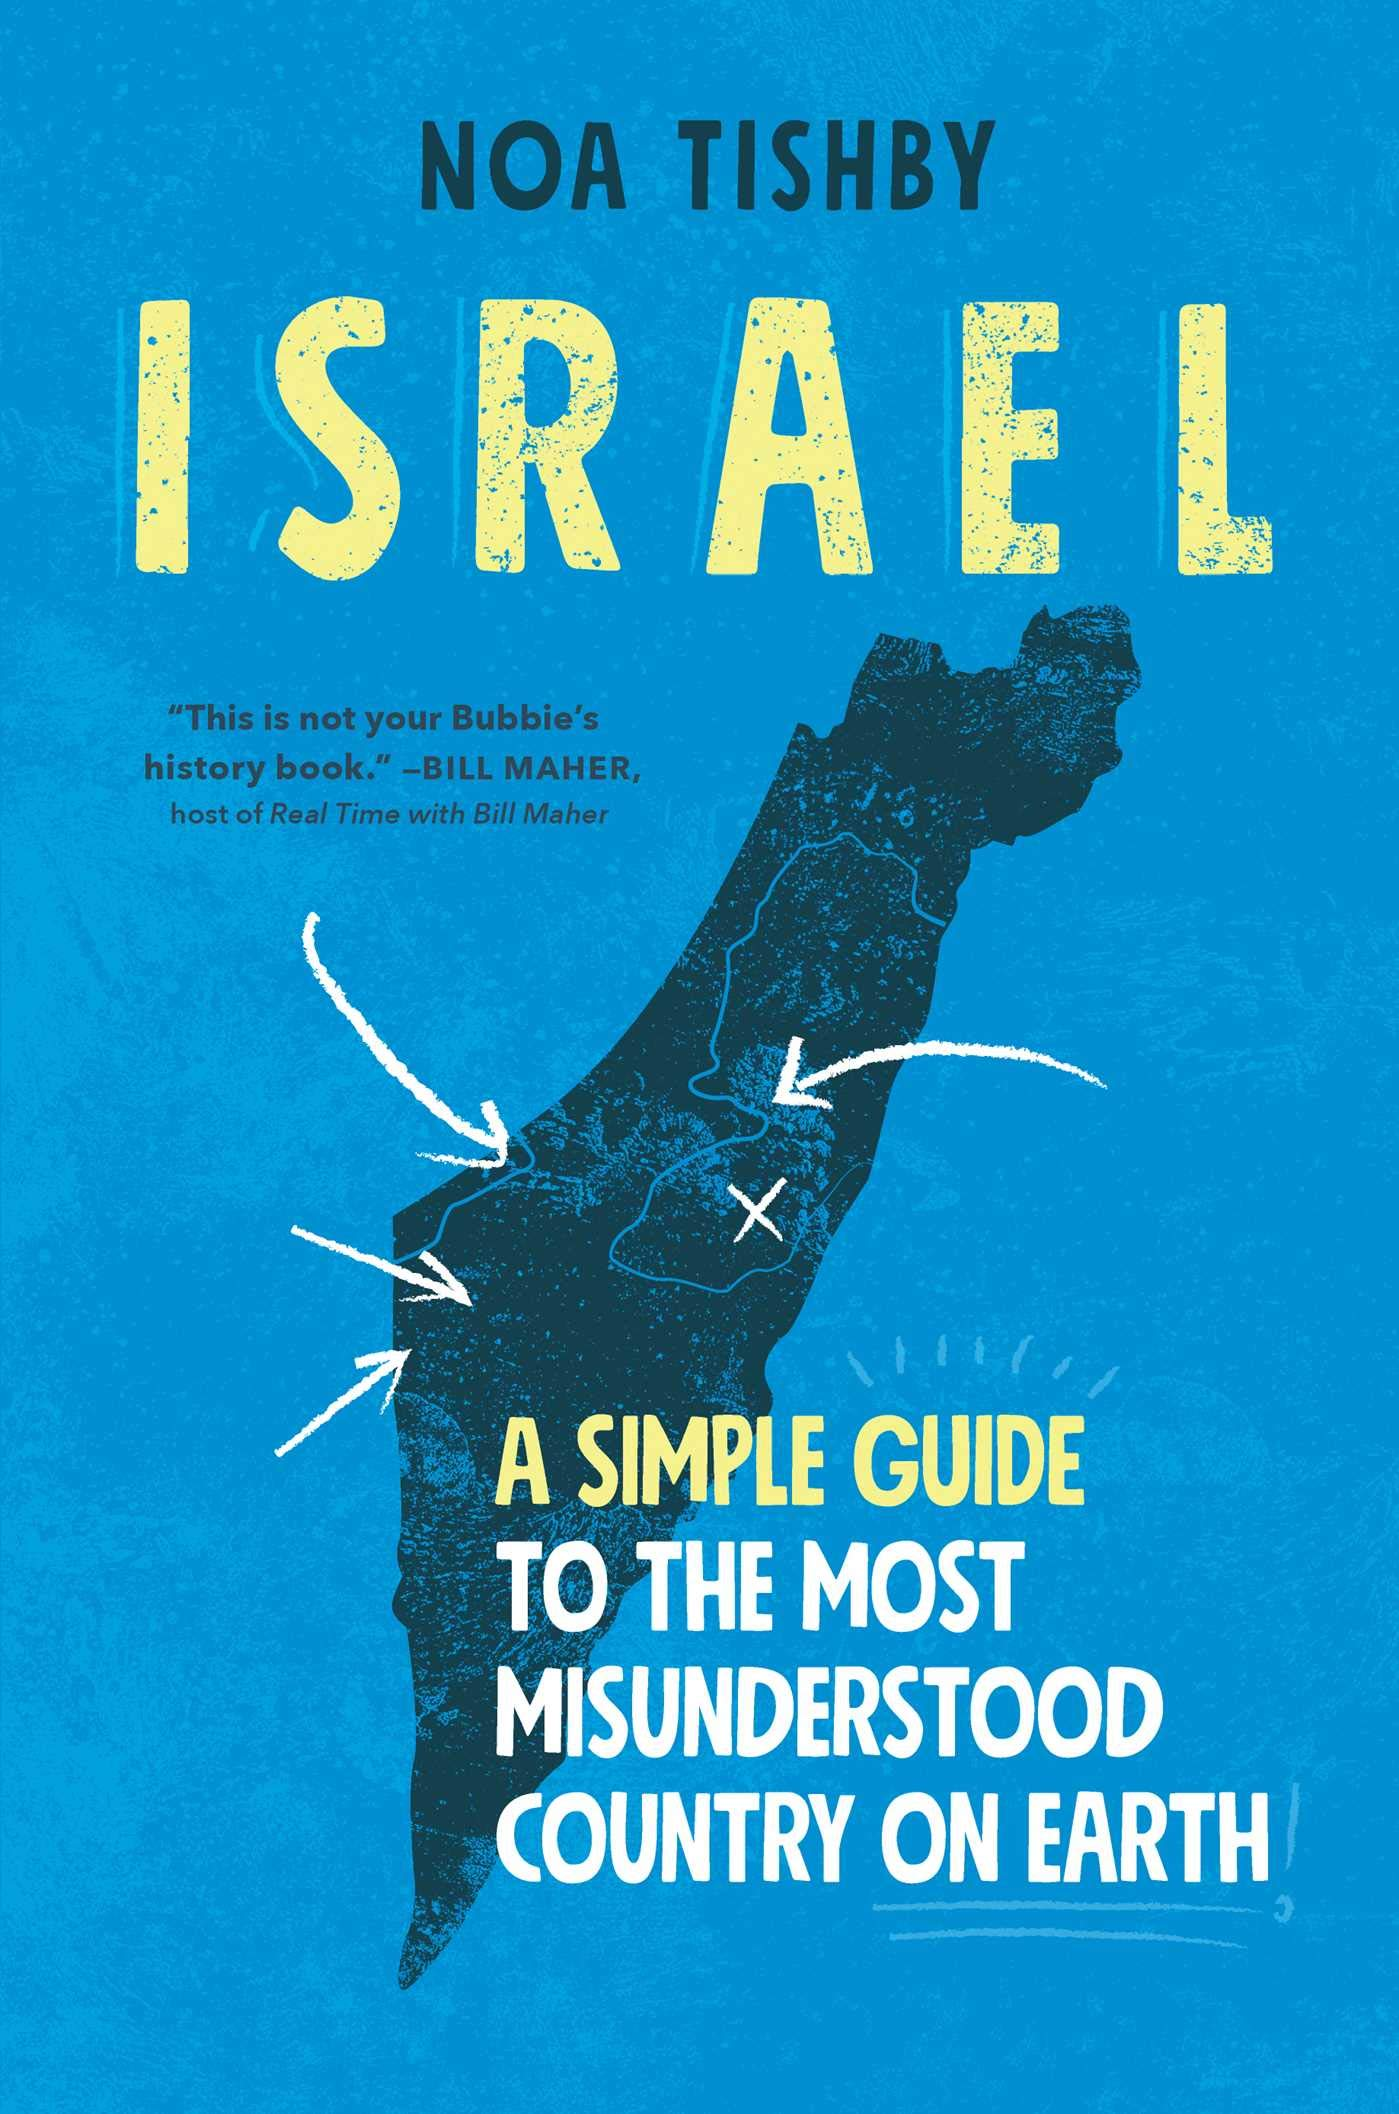 Israel A Simple Guide To The Most Misunderstood Country on Earth-min